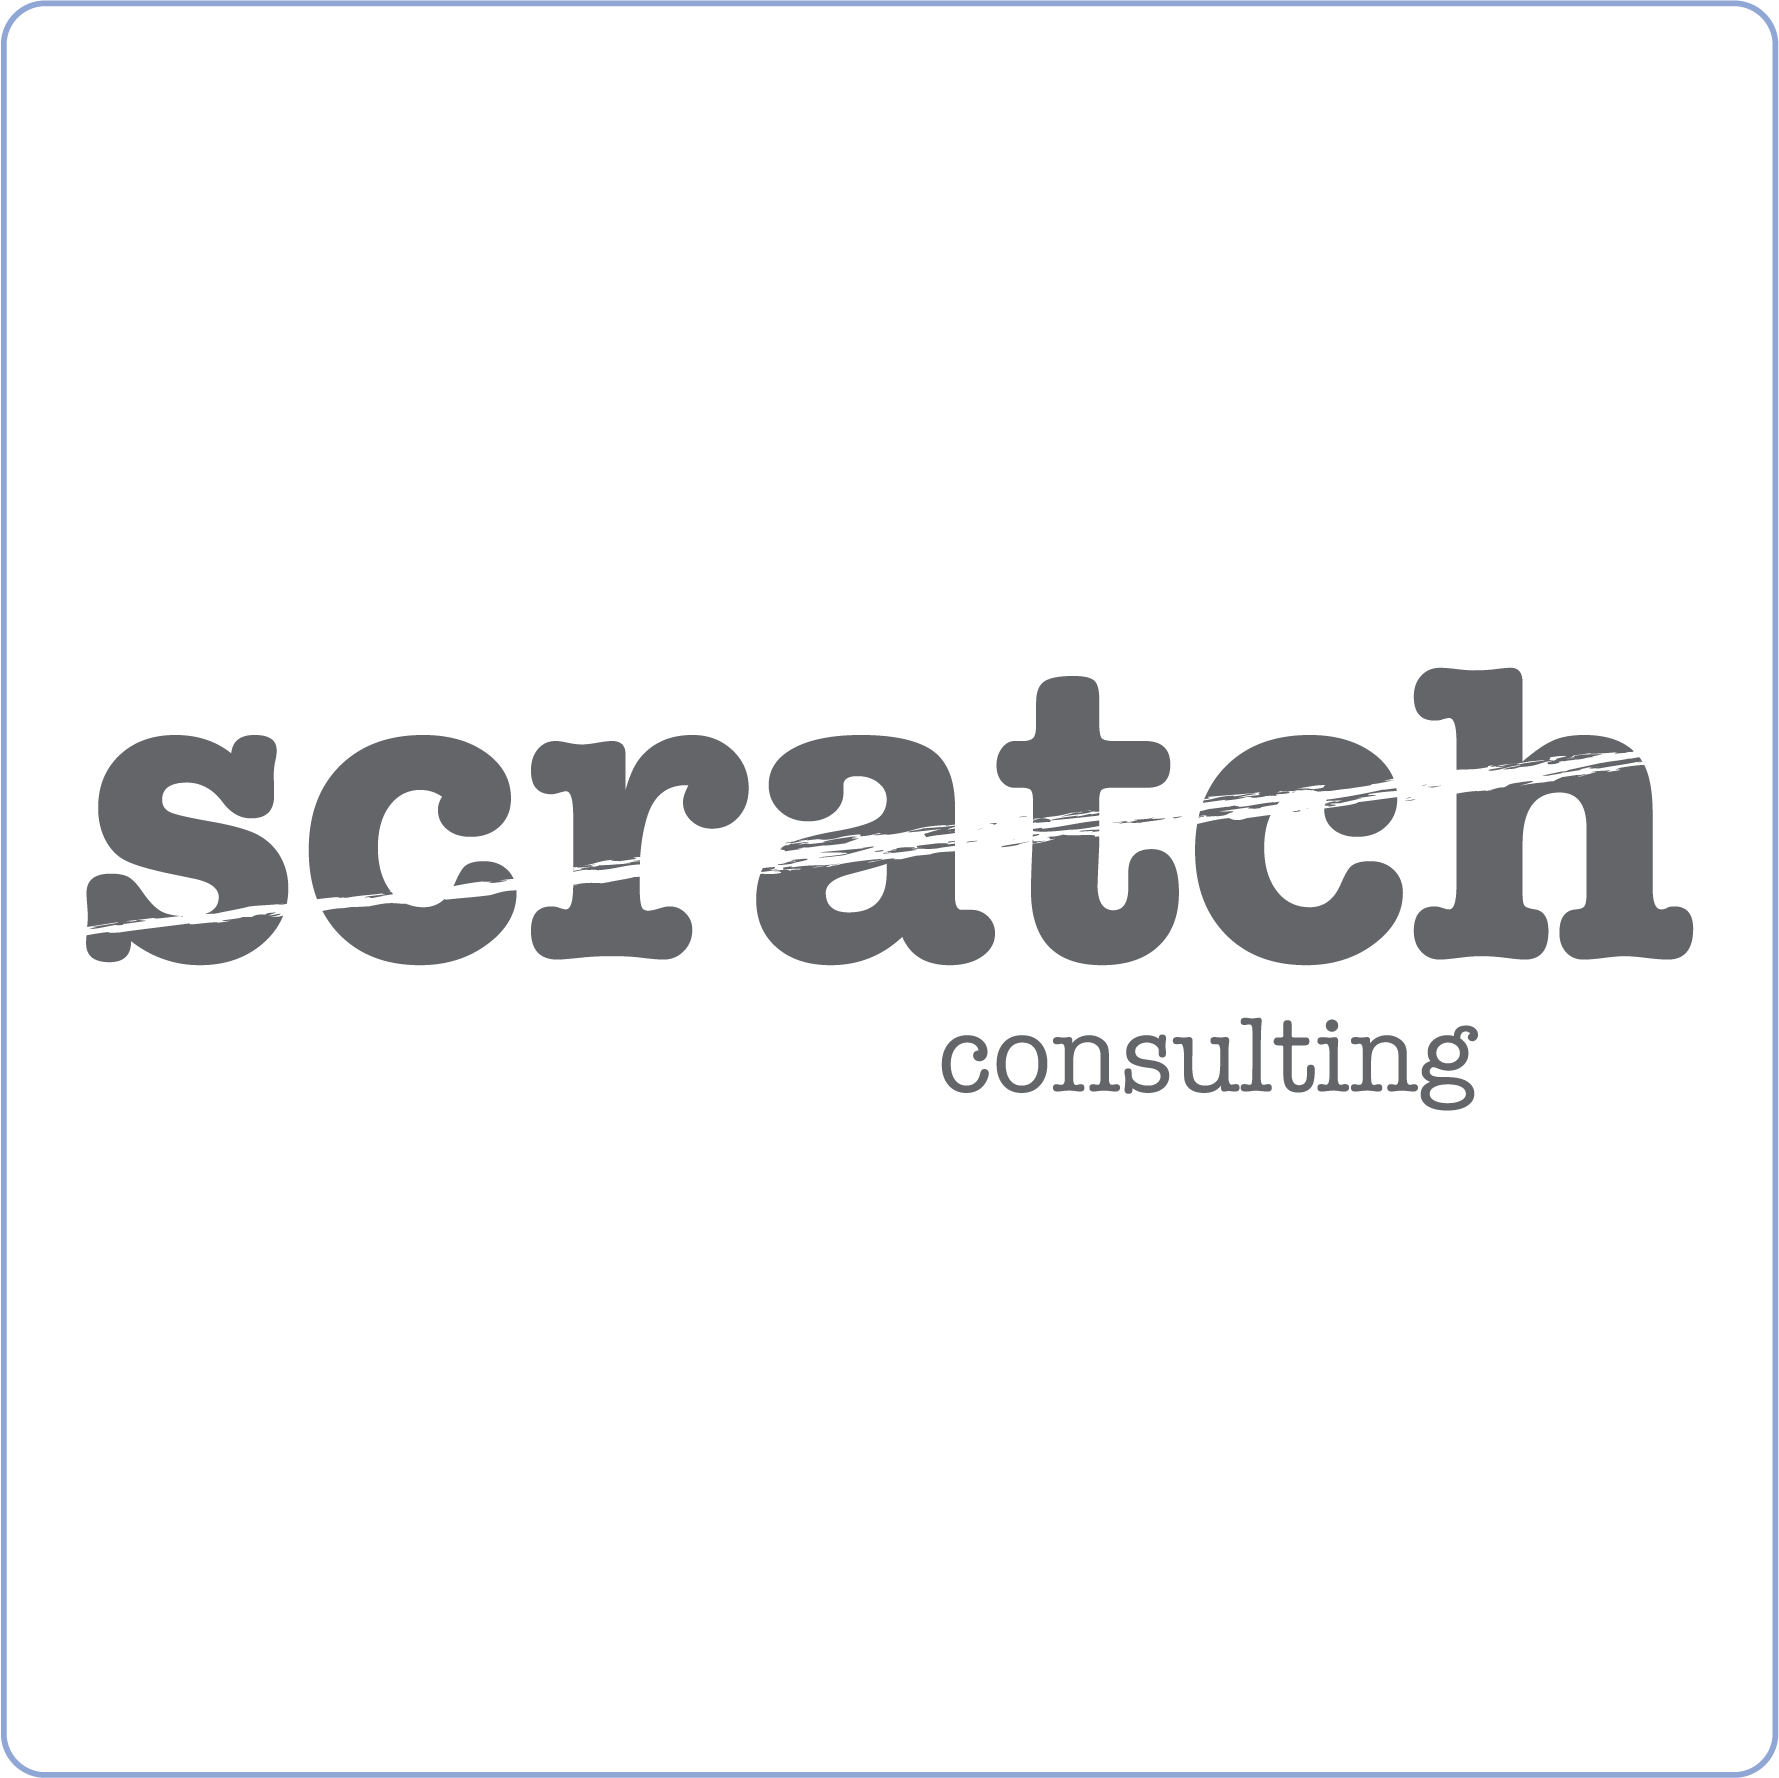 Scratch Consulting logo